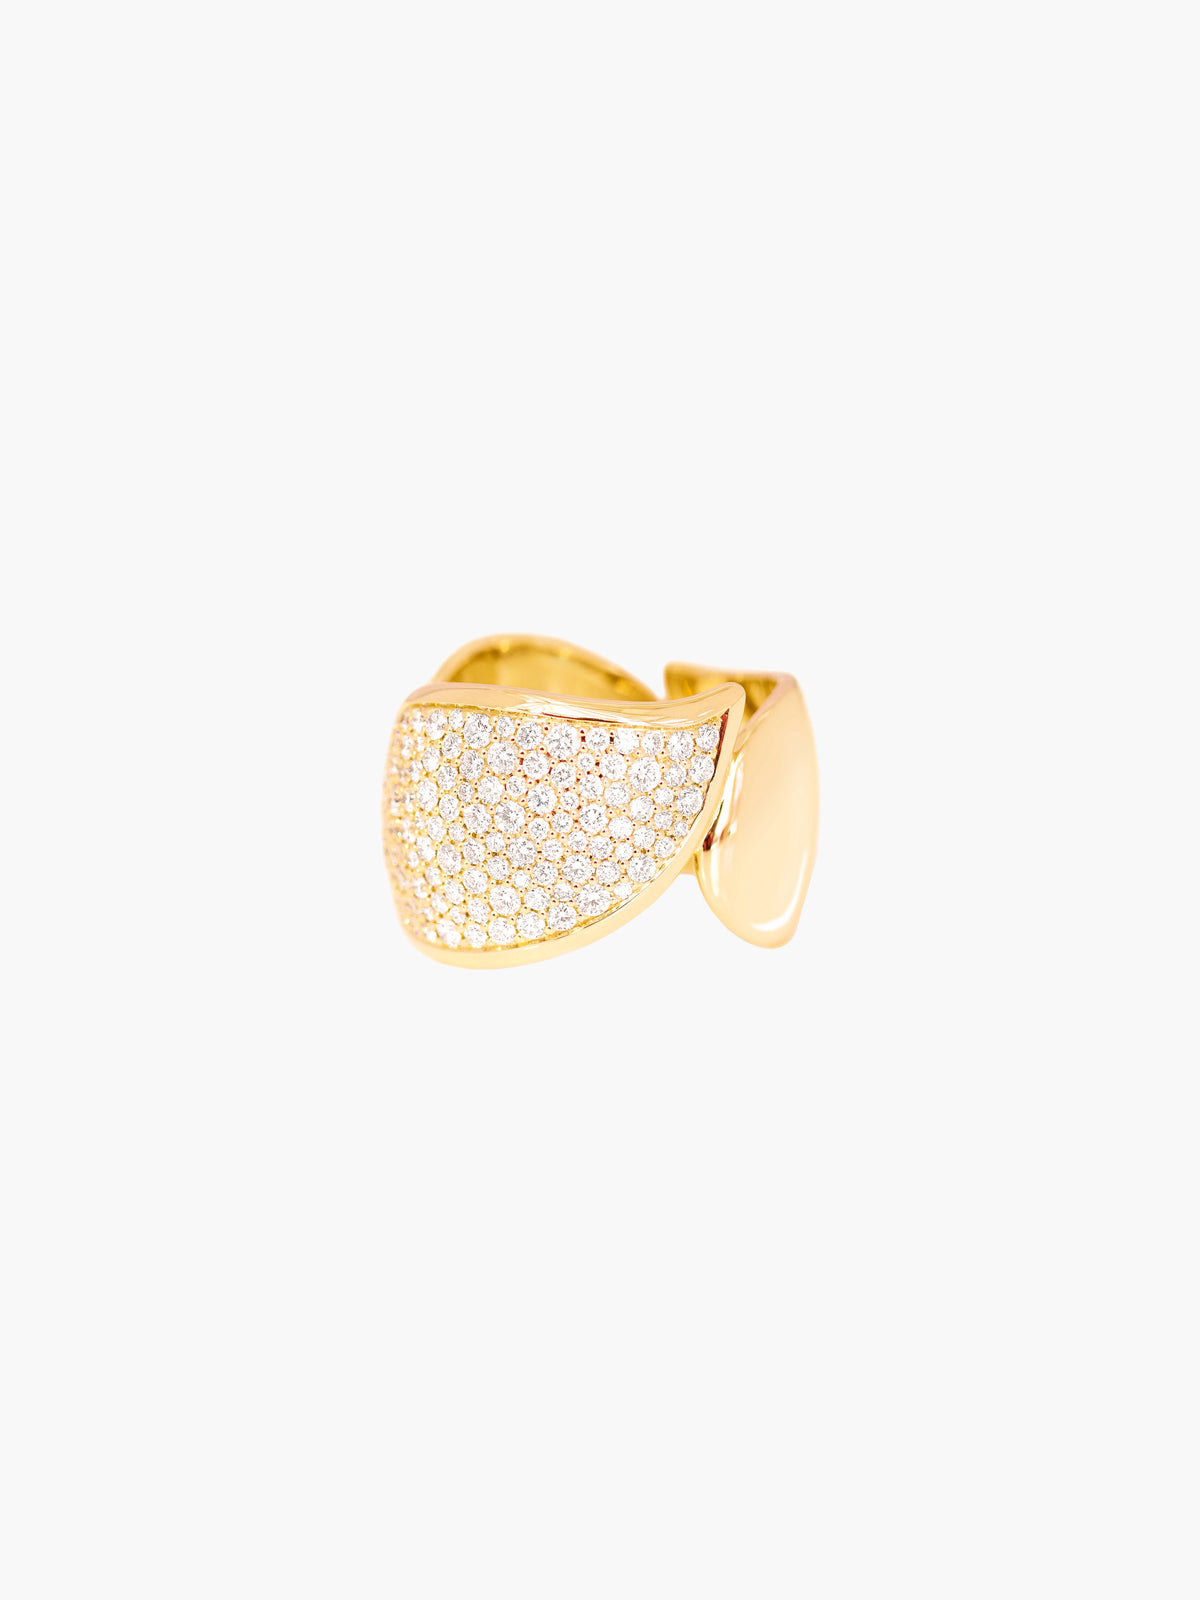 Signature Pave Wave Ring | Yellow Gold Signature Pave Wave Ring | Yellow Gold